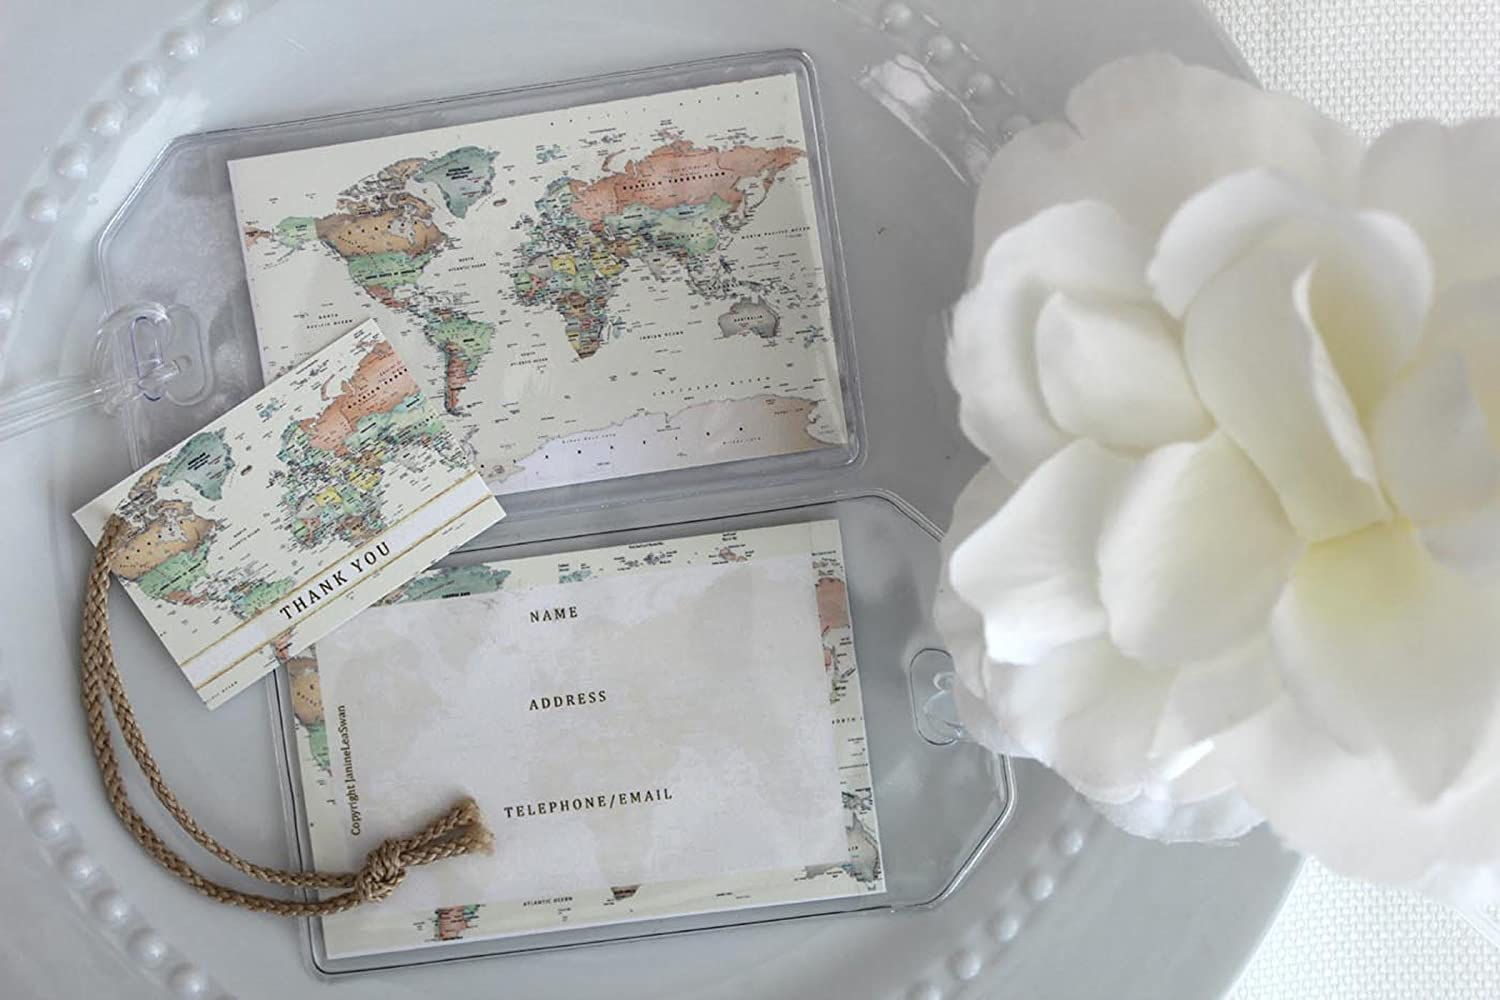 Amazon.com: 50 World Map Luggage Tag Favors ivory $1.25 ea.: Home ...